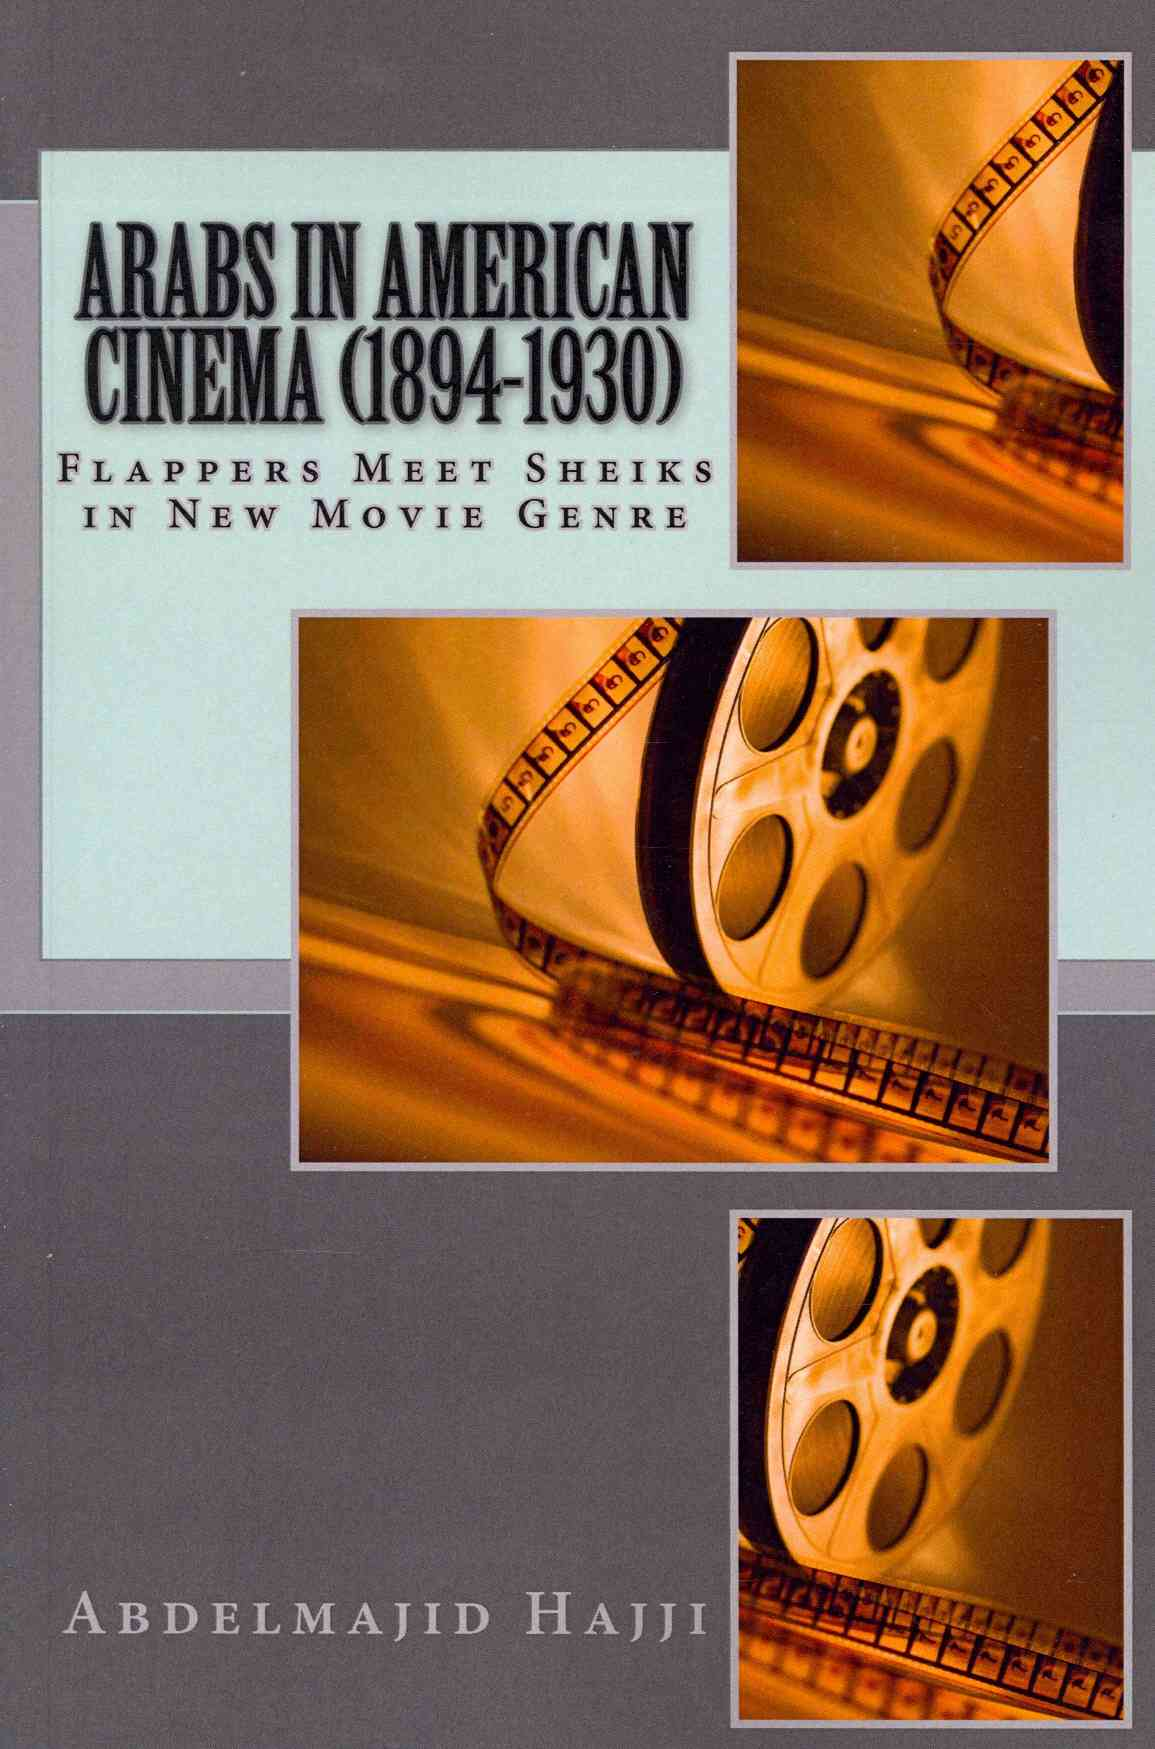 Arabs in American Cinema (1894-1930): Flappers Meet Sheiks in New Movie Genre (Paperback)